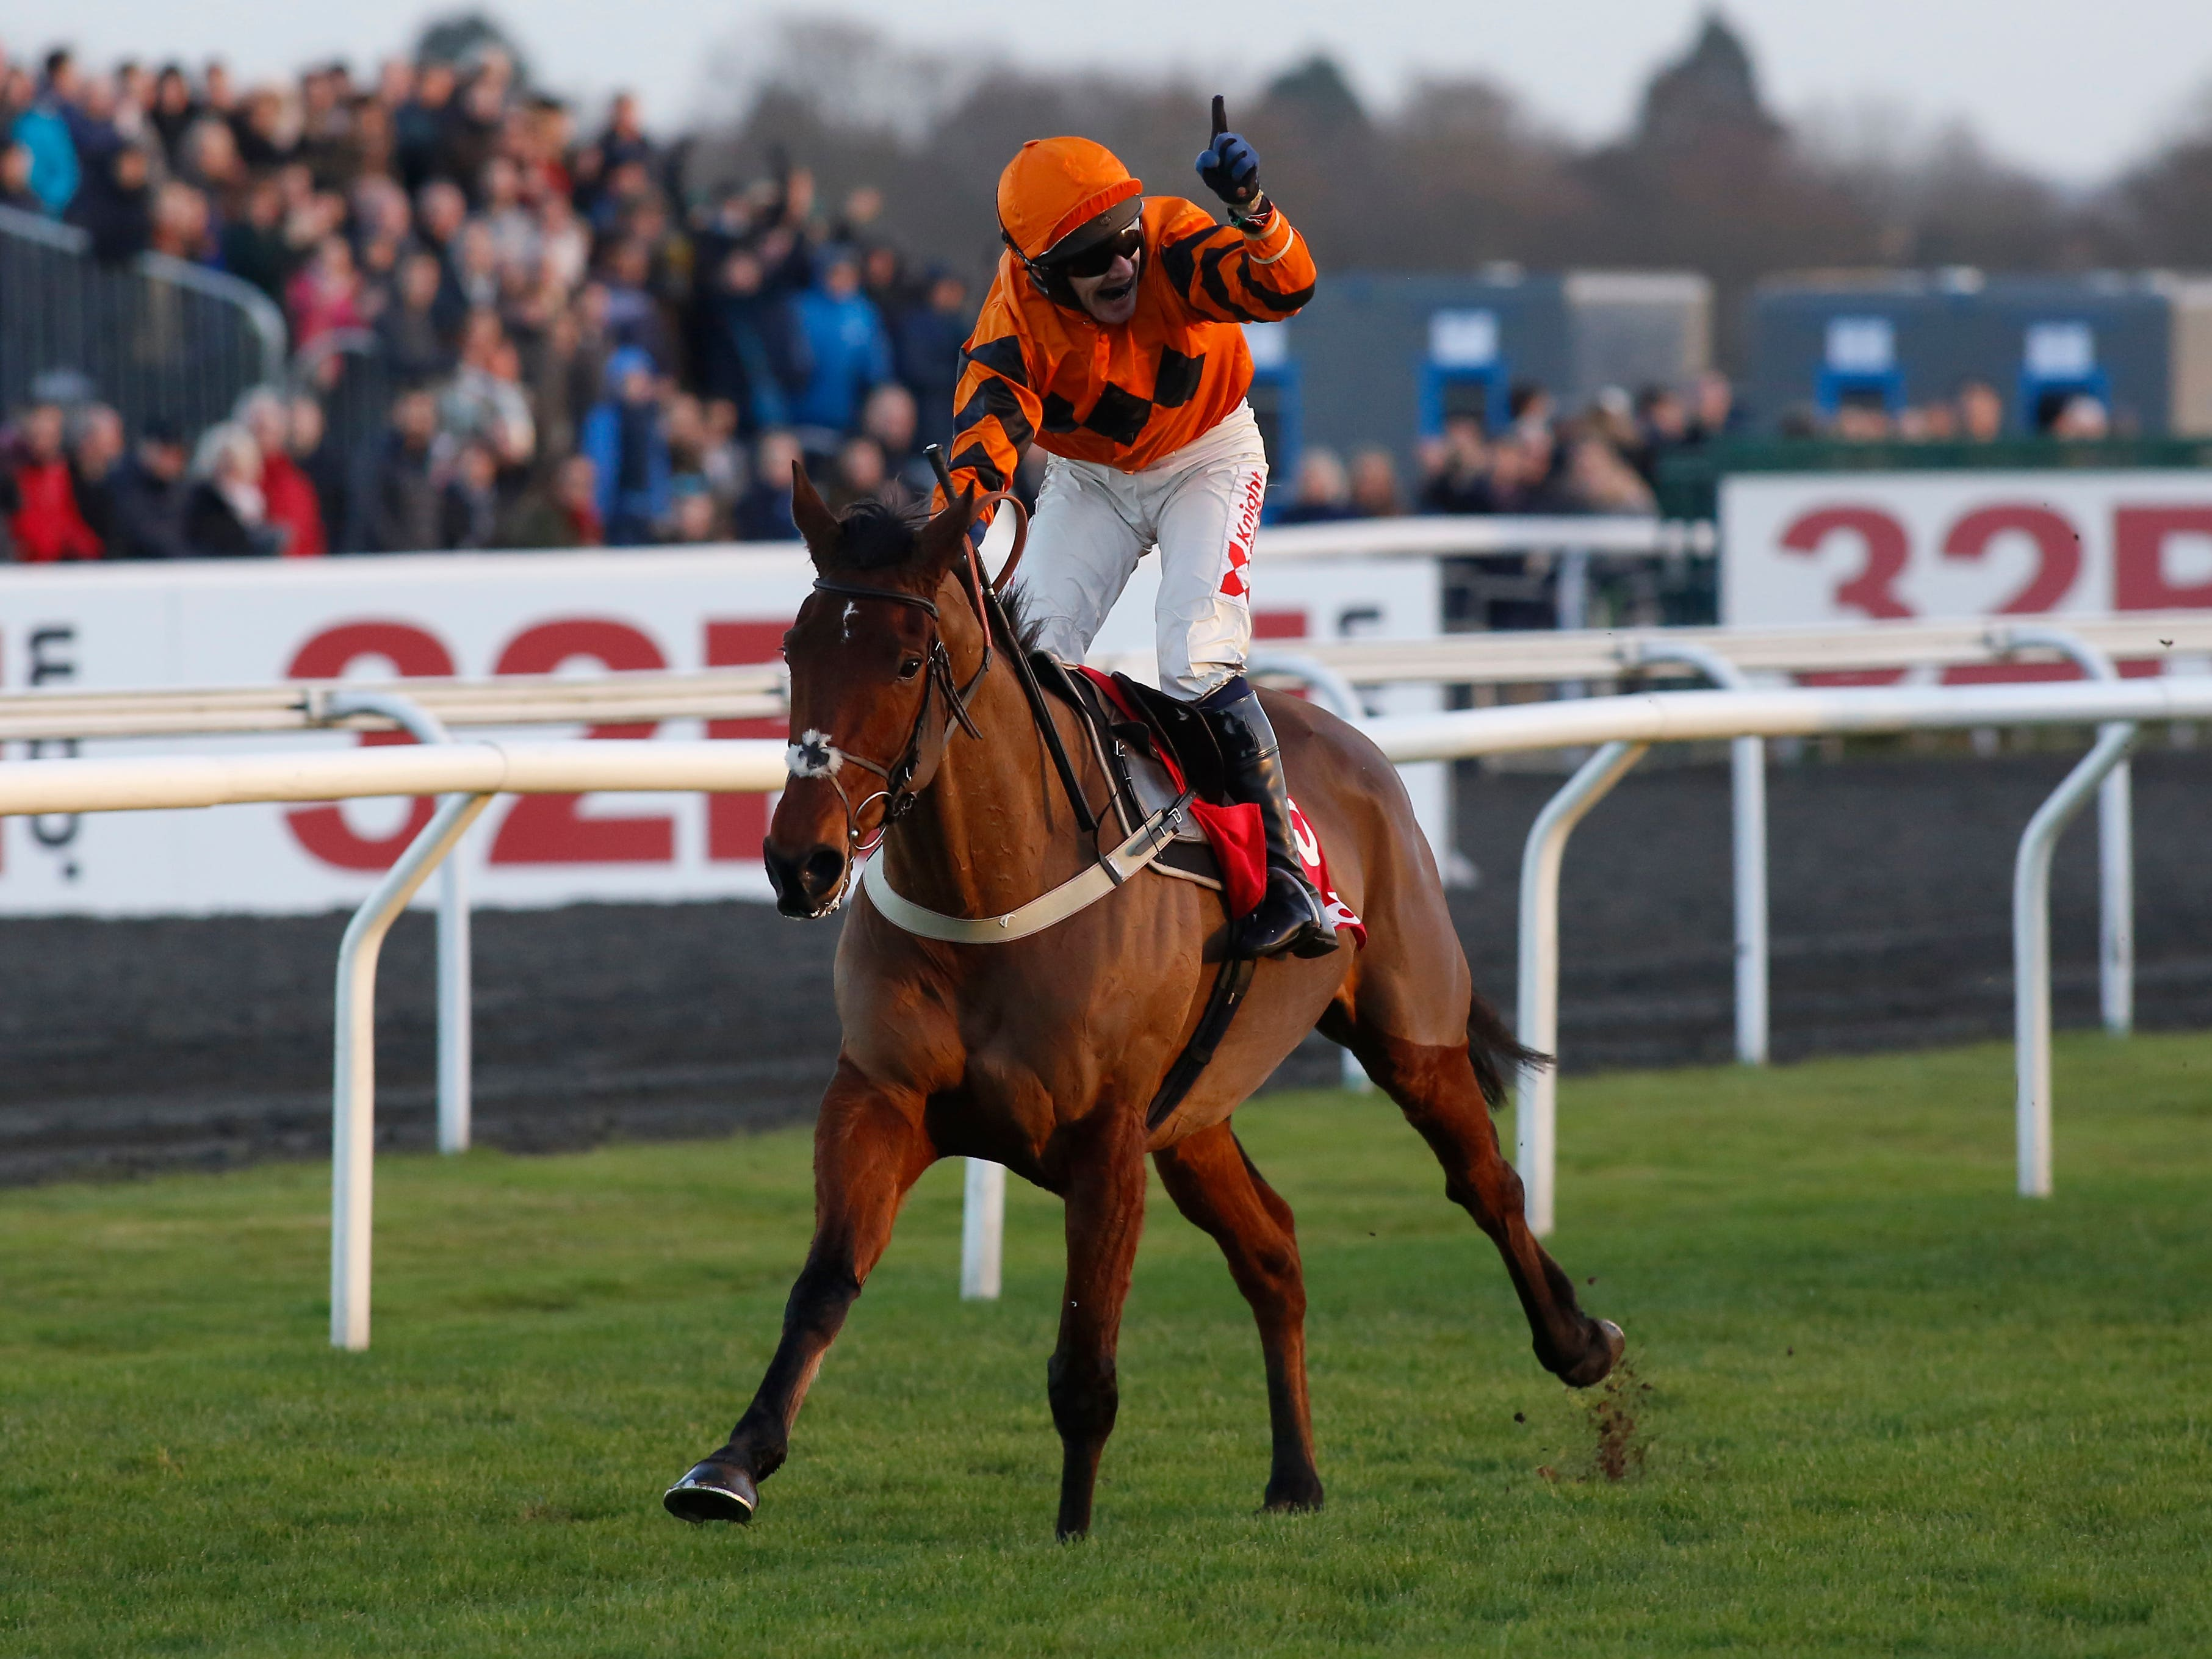 Thistlecrack after winning the King George VI Chase at Kempton (Julian Herbert/PA)